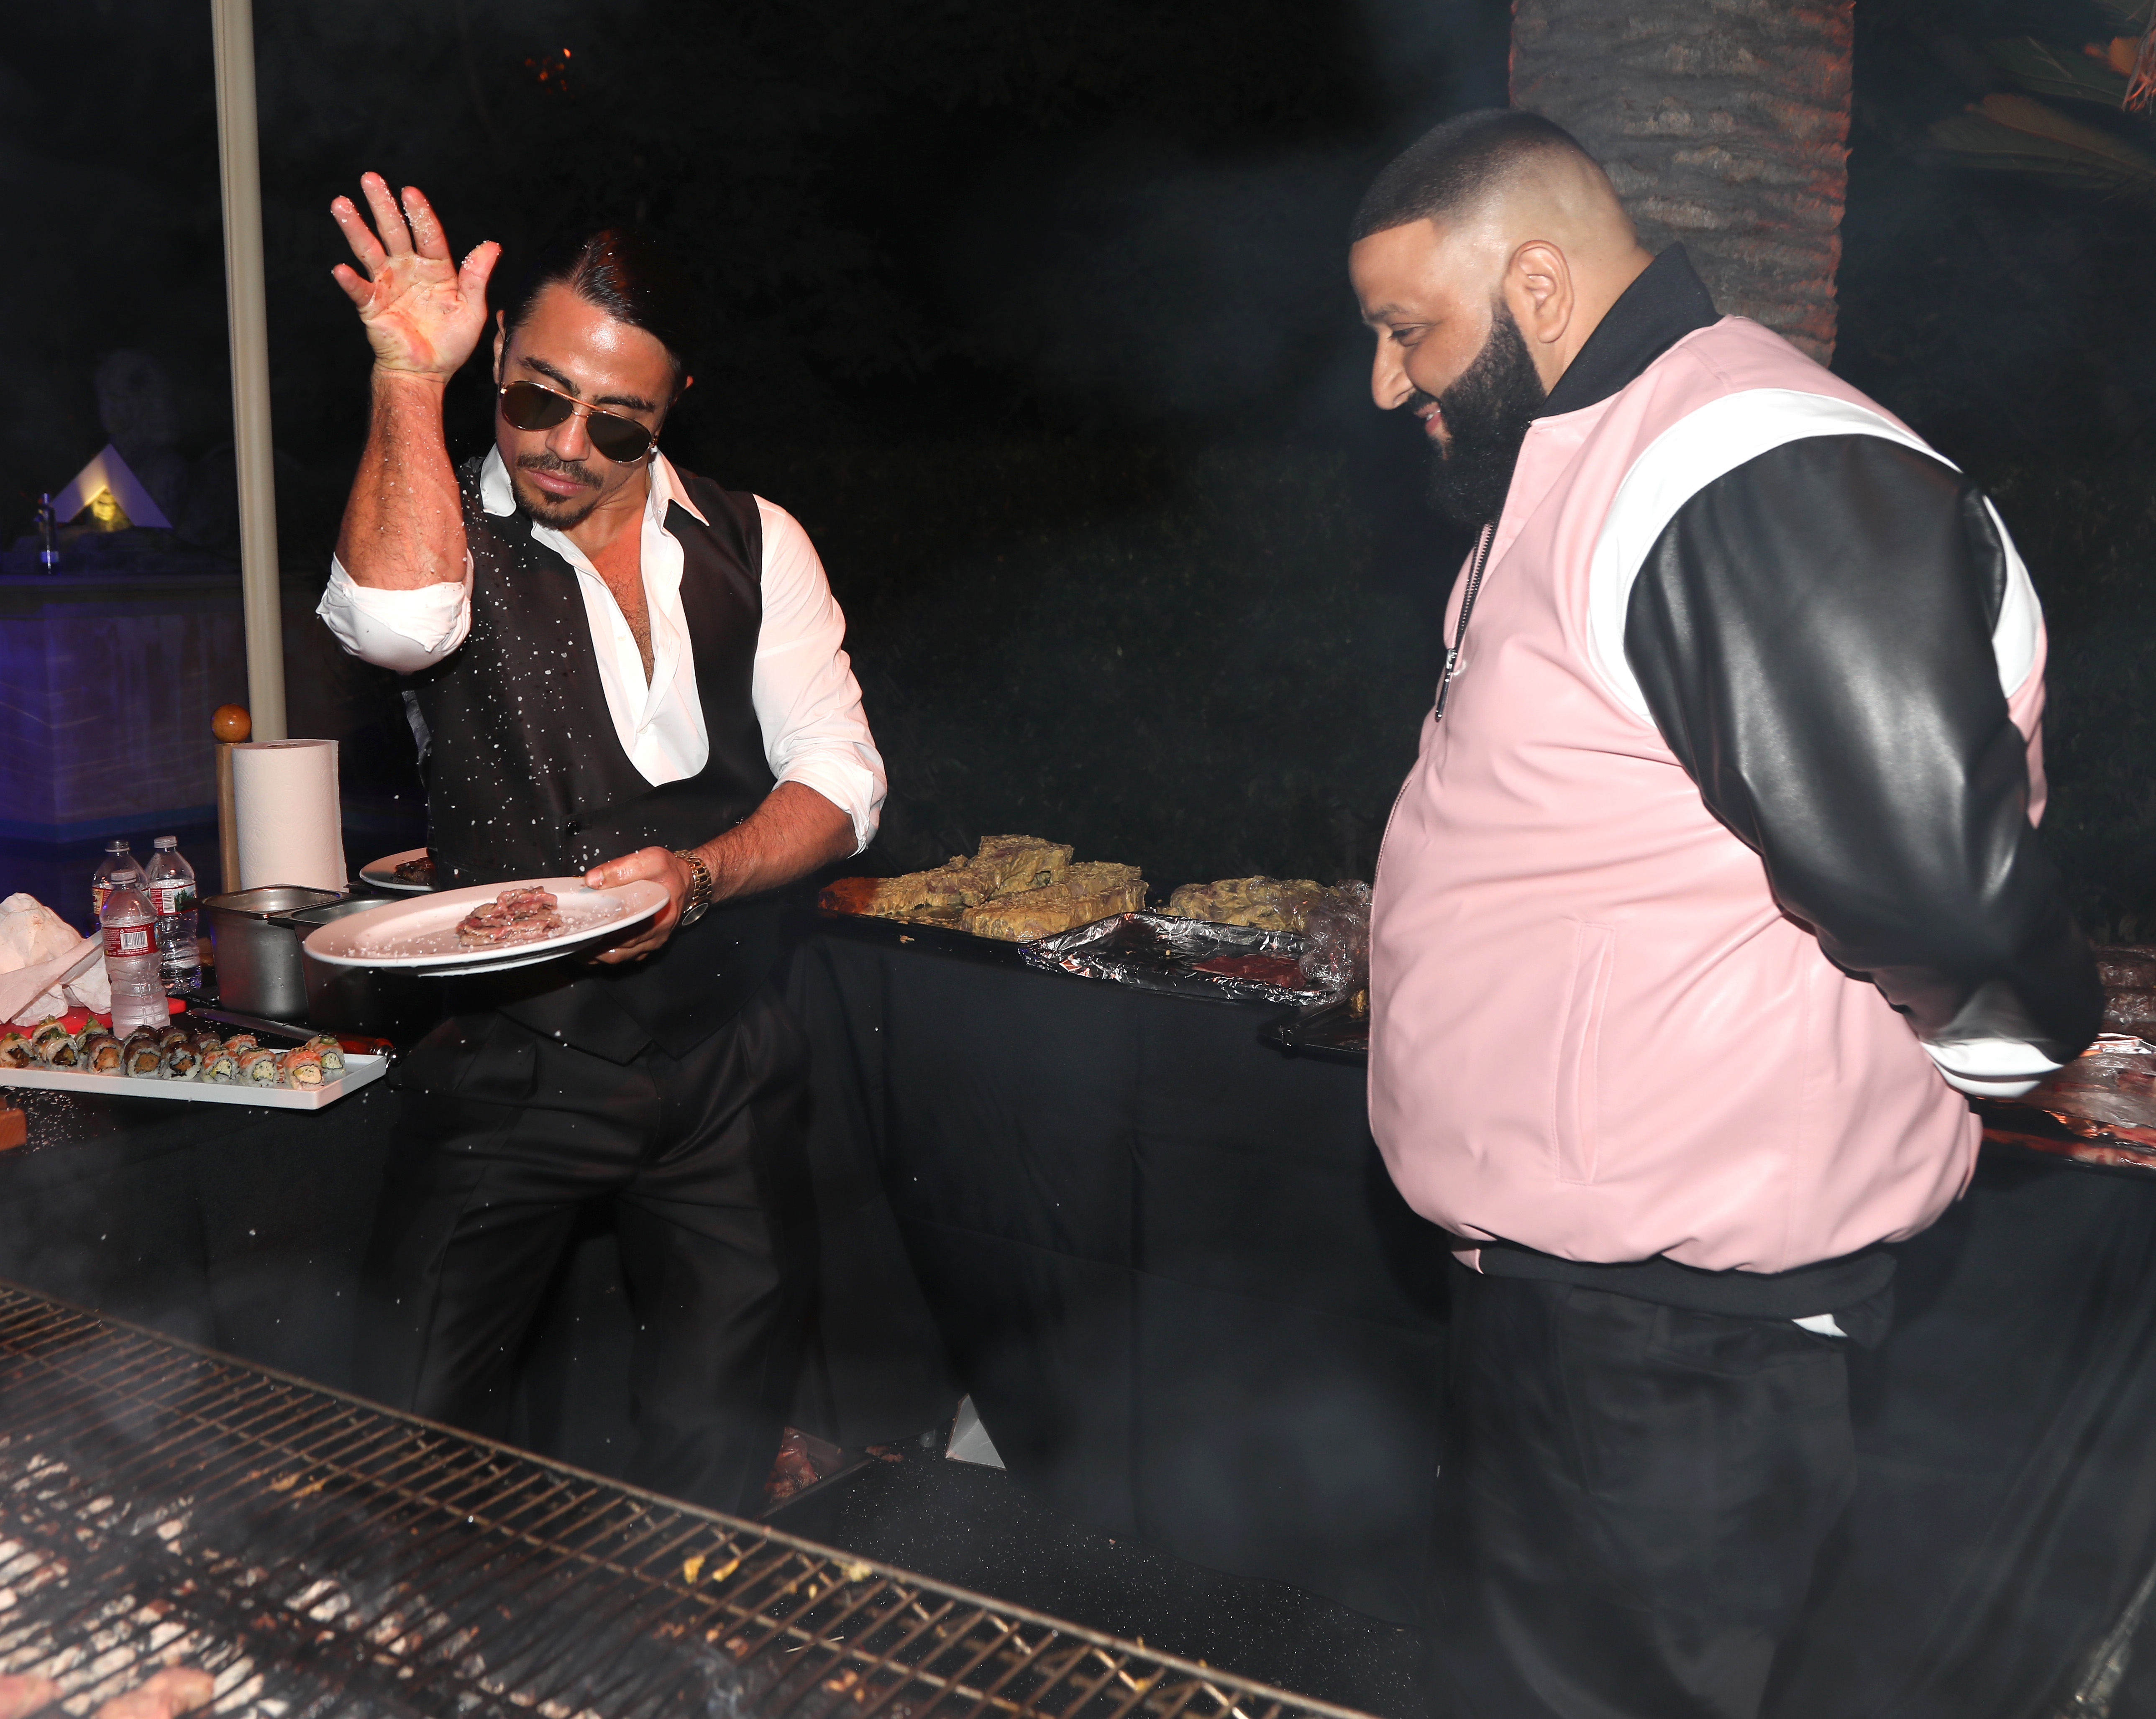 BEVERLY HILLS, CA - DECEMBER 02:  Salt Bae Nusret Gökçe and DJ Khaled attend The Four cast Sean Diddy Combs, Fergie, and Meghan Trainor Host DJ Khaled's Birthday Presented by CÎROC and Fox on December 2, 2017 in Beverly Hills, California.  (Photo by Jerritt Clark/Getty Images for Ciroc)